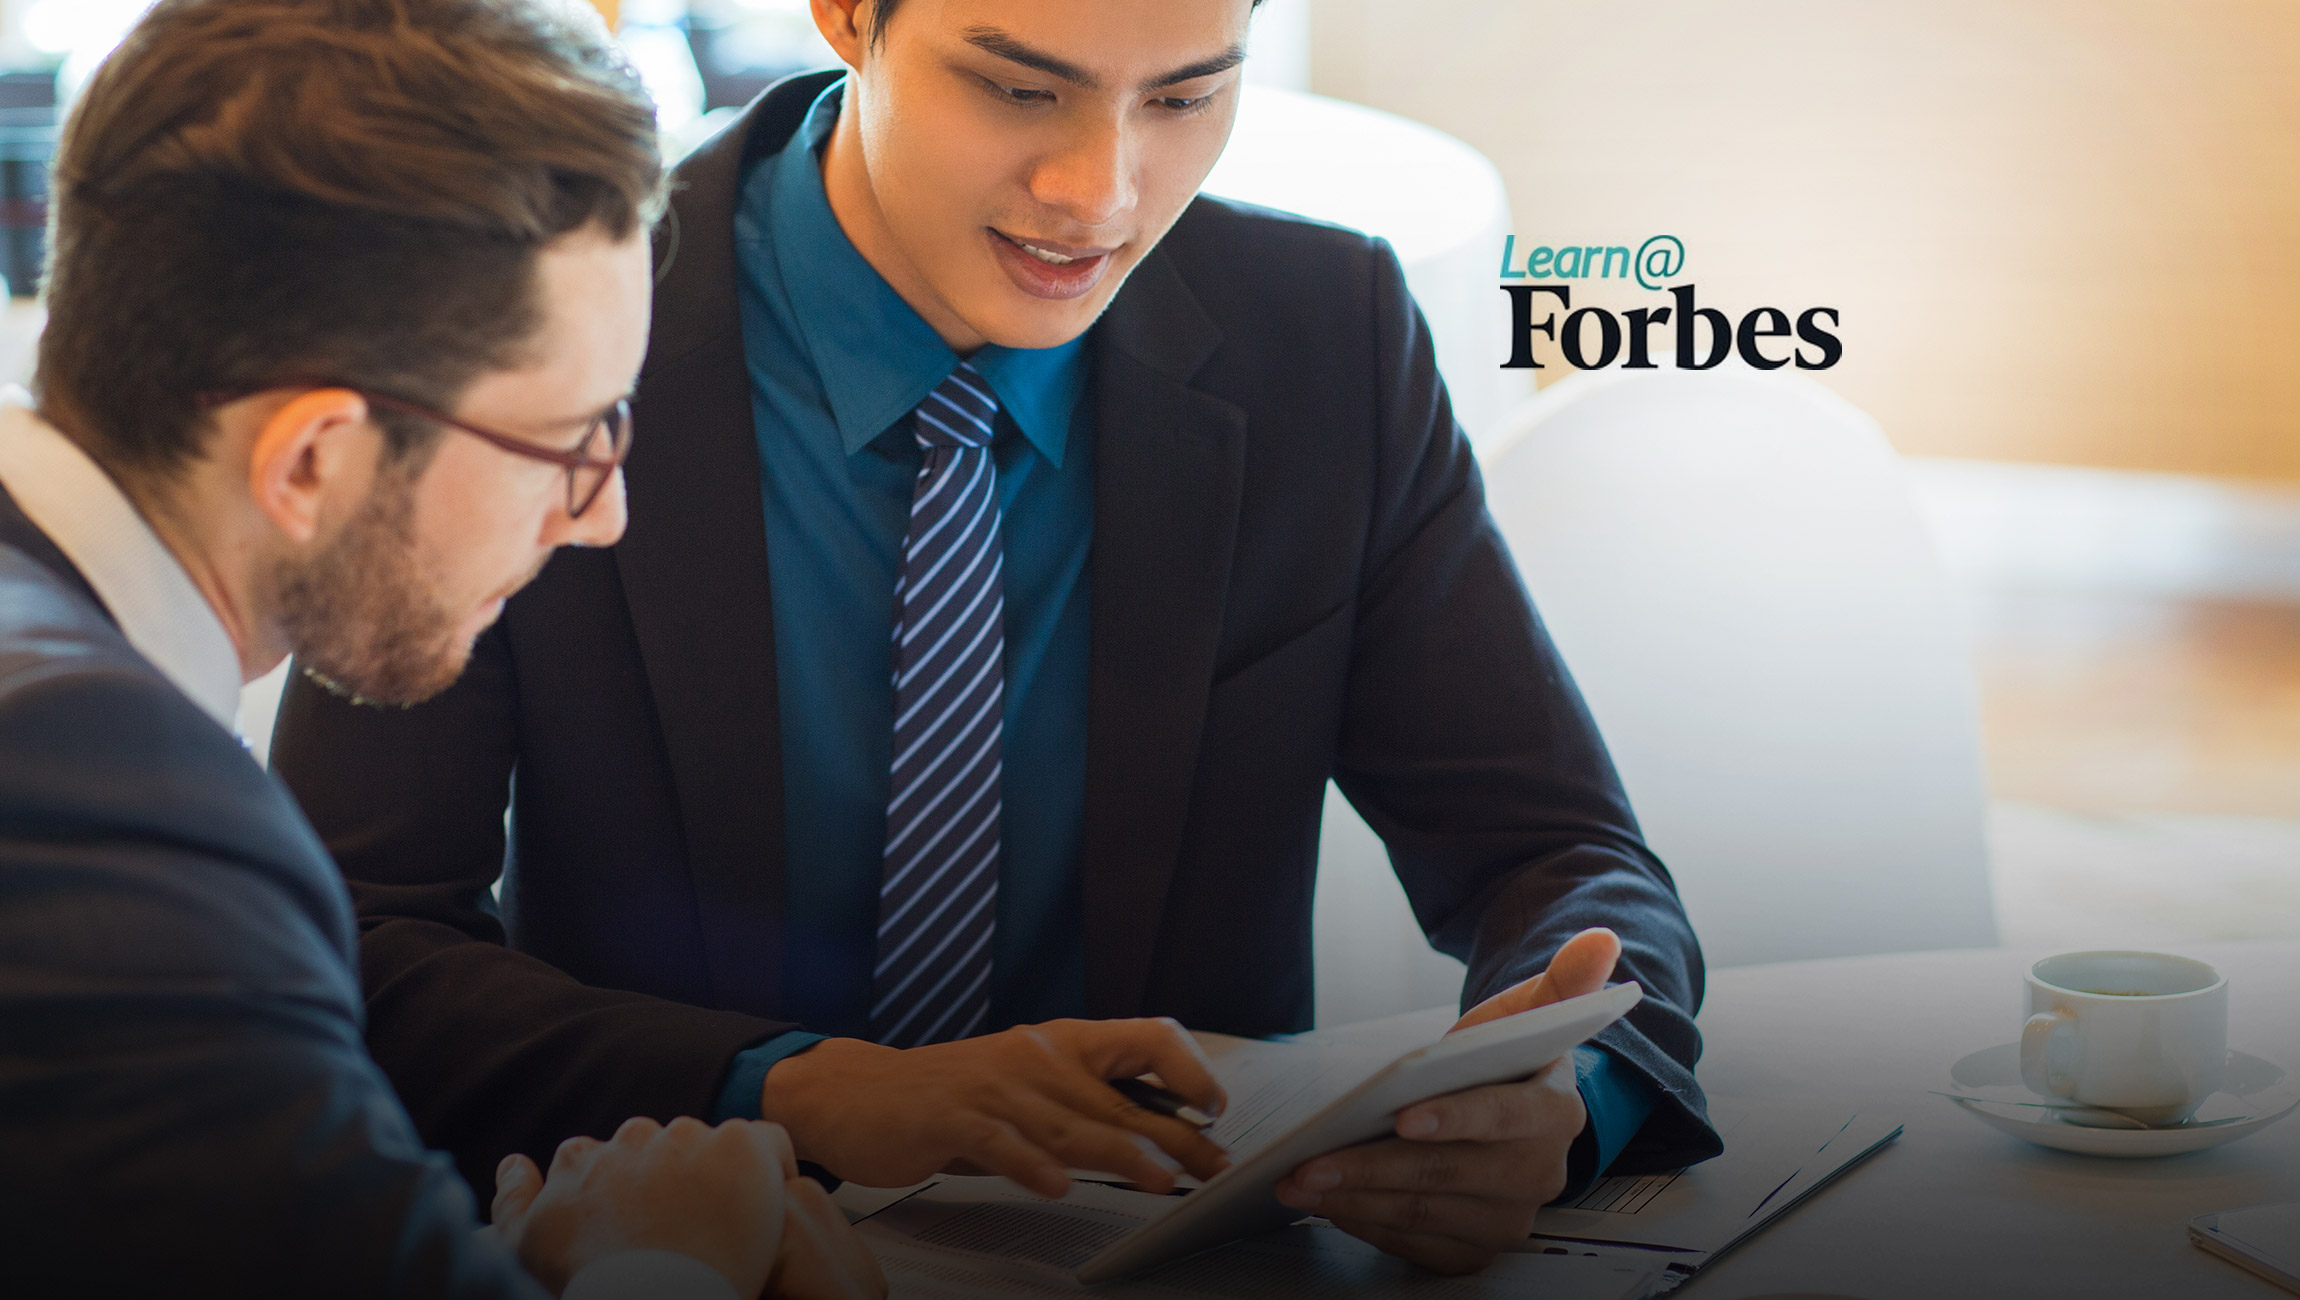 Learn@Forbes Launches an AI Career Counselor